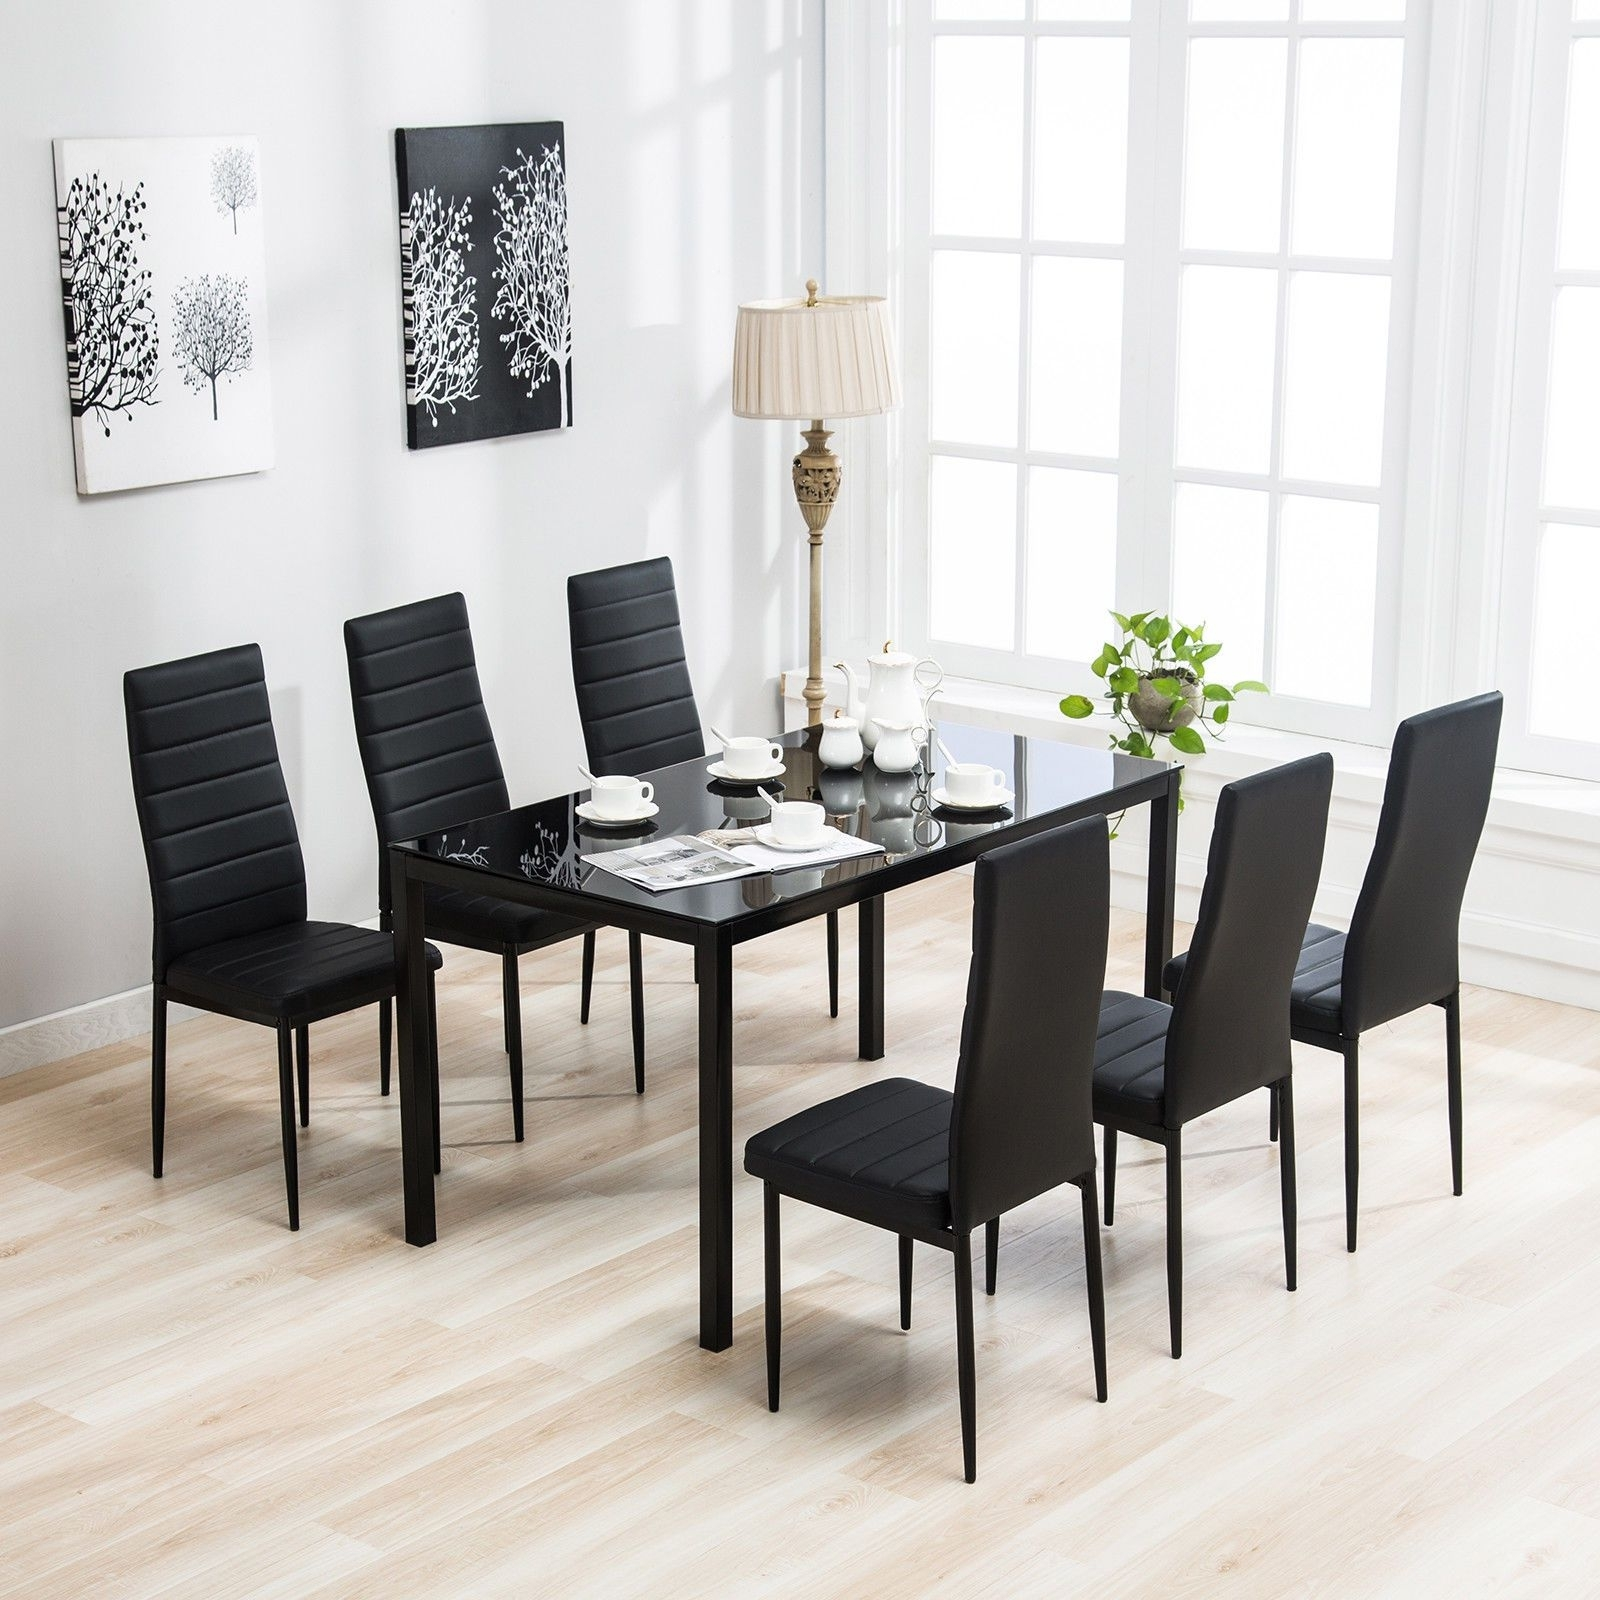 Best And Newest 7 Piece Dining Table Set 6 Chairs Black Glass Metal Kitchen Room With Regard To Black Glass Dining Tables And 6 Chairs (View 17 of 25)